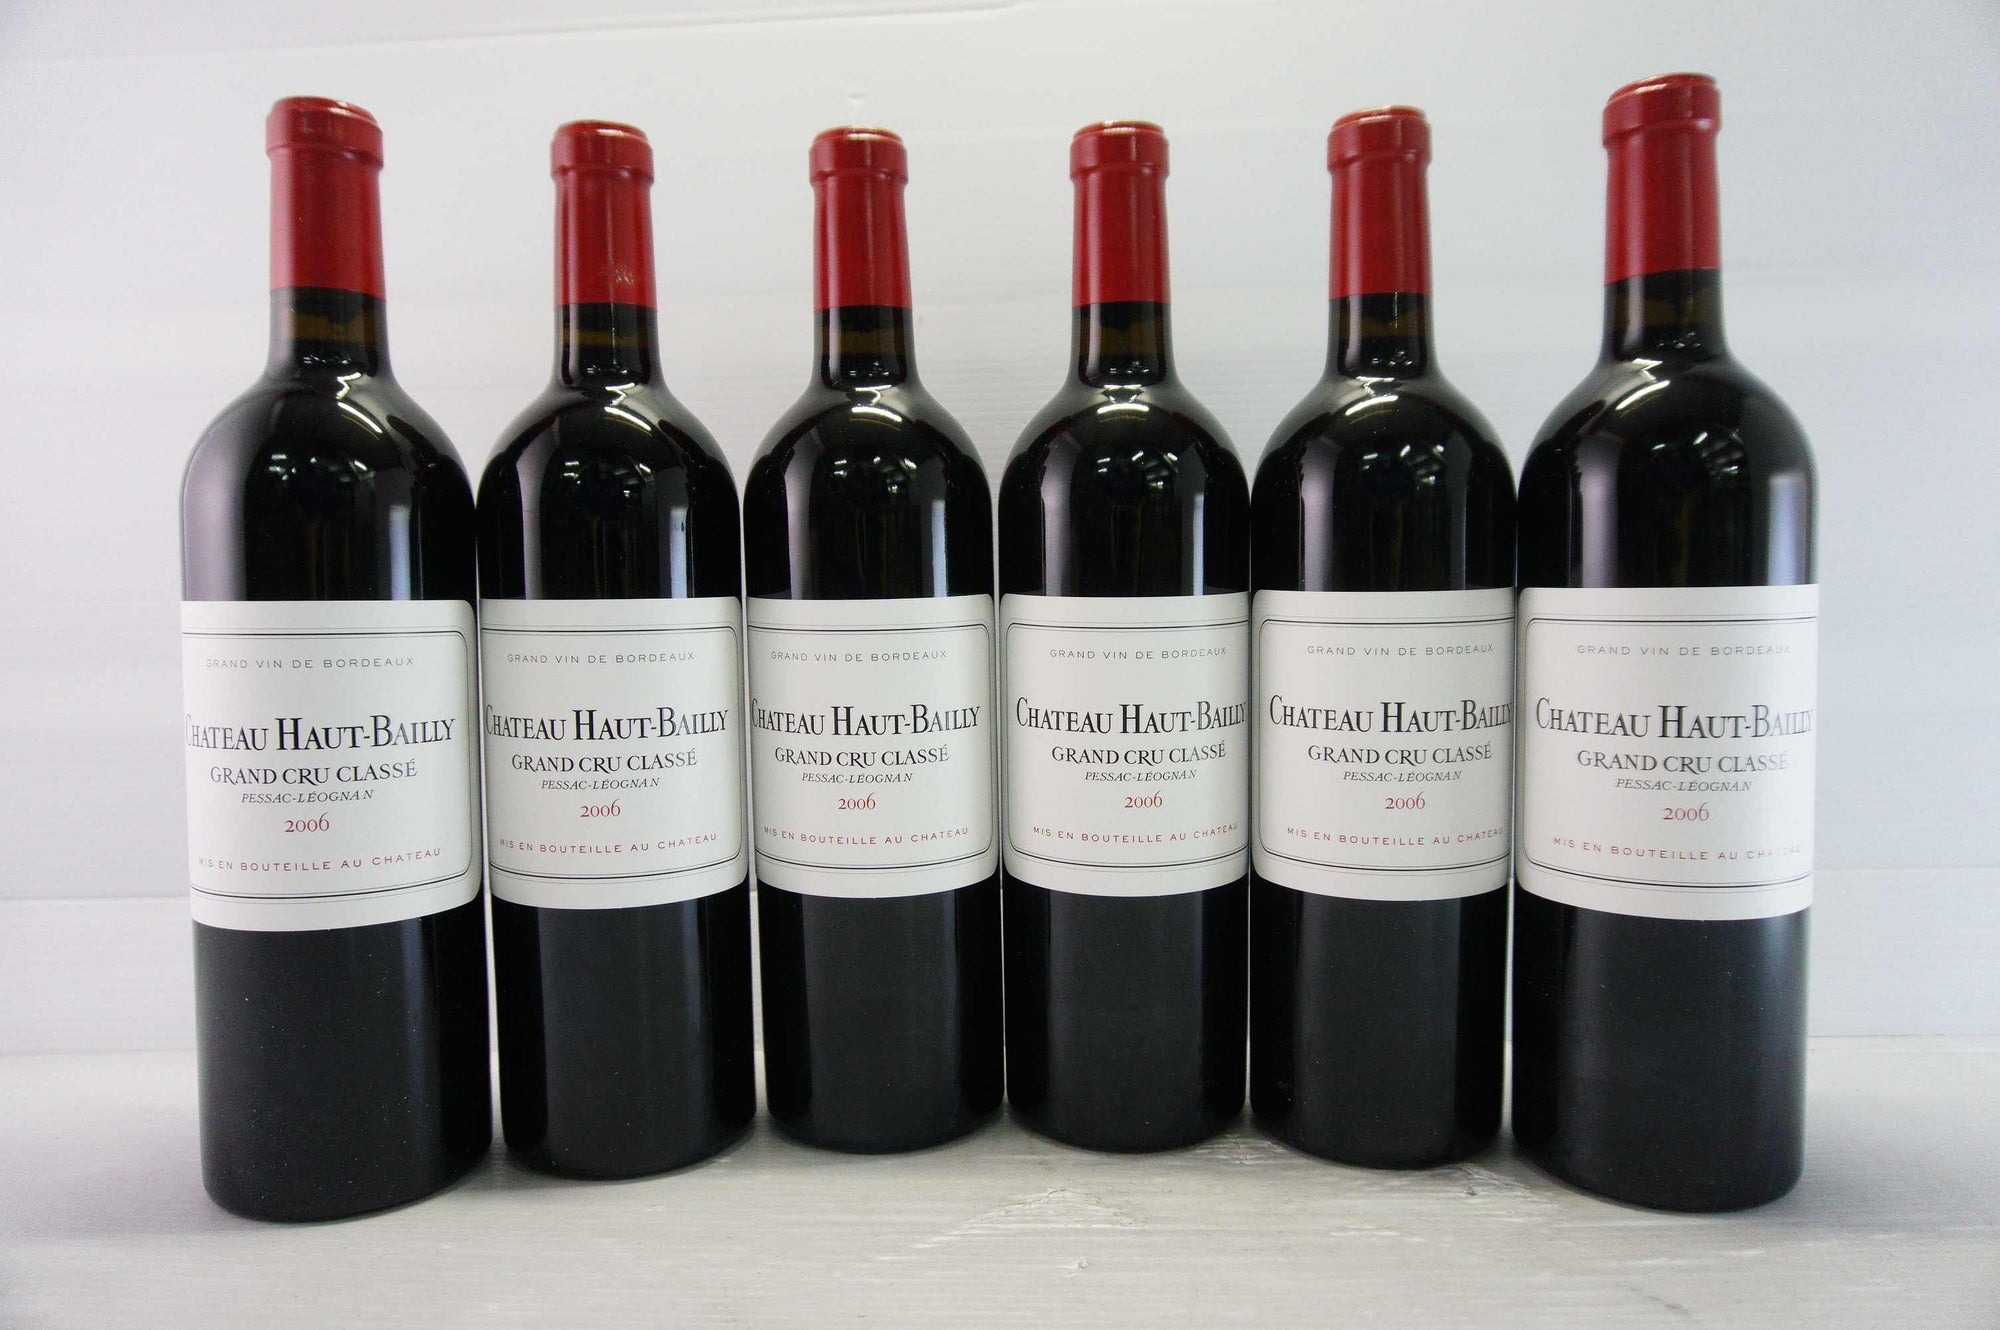 Chateau Haut Bailly 2006